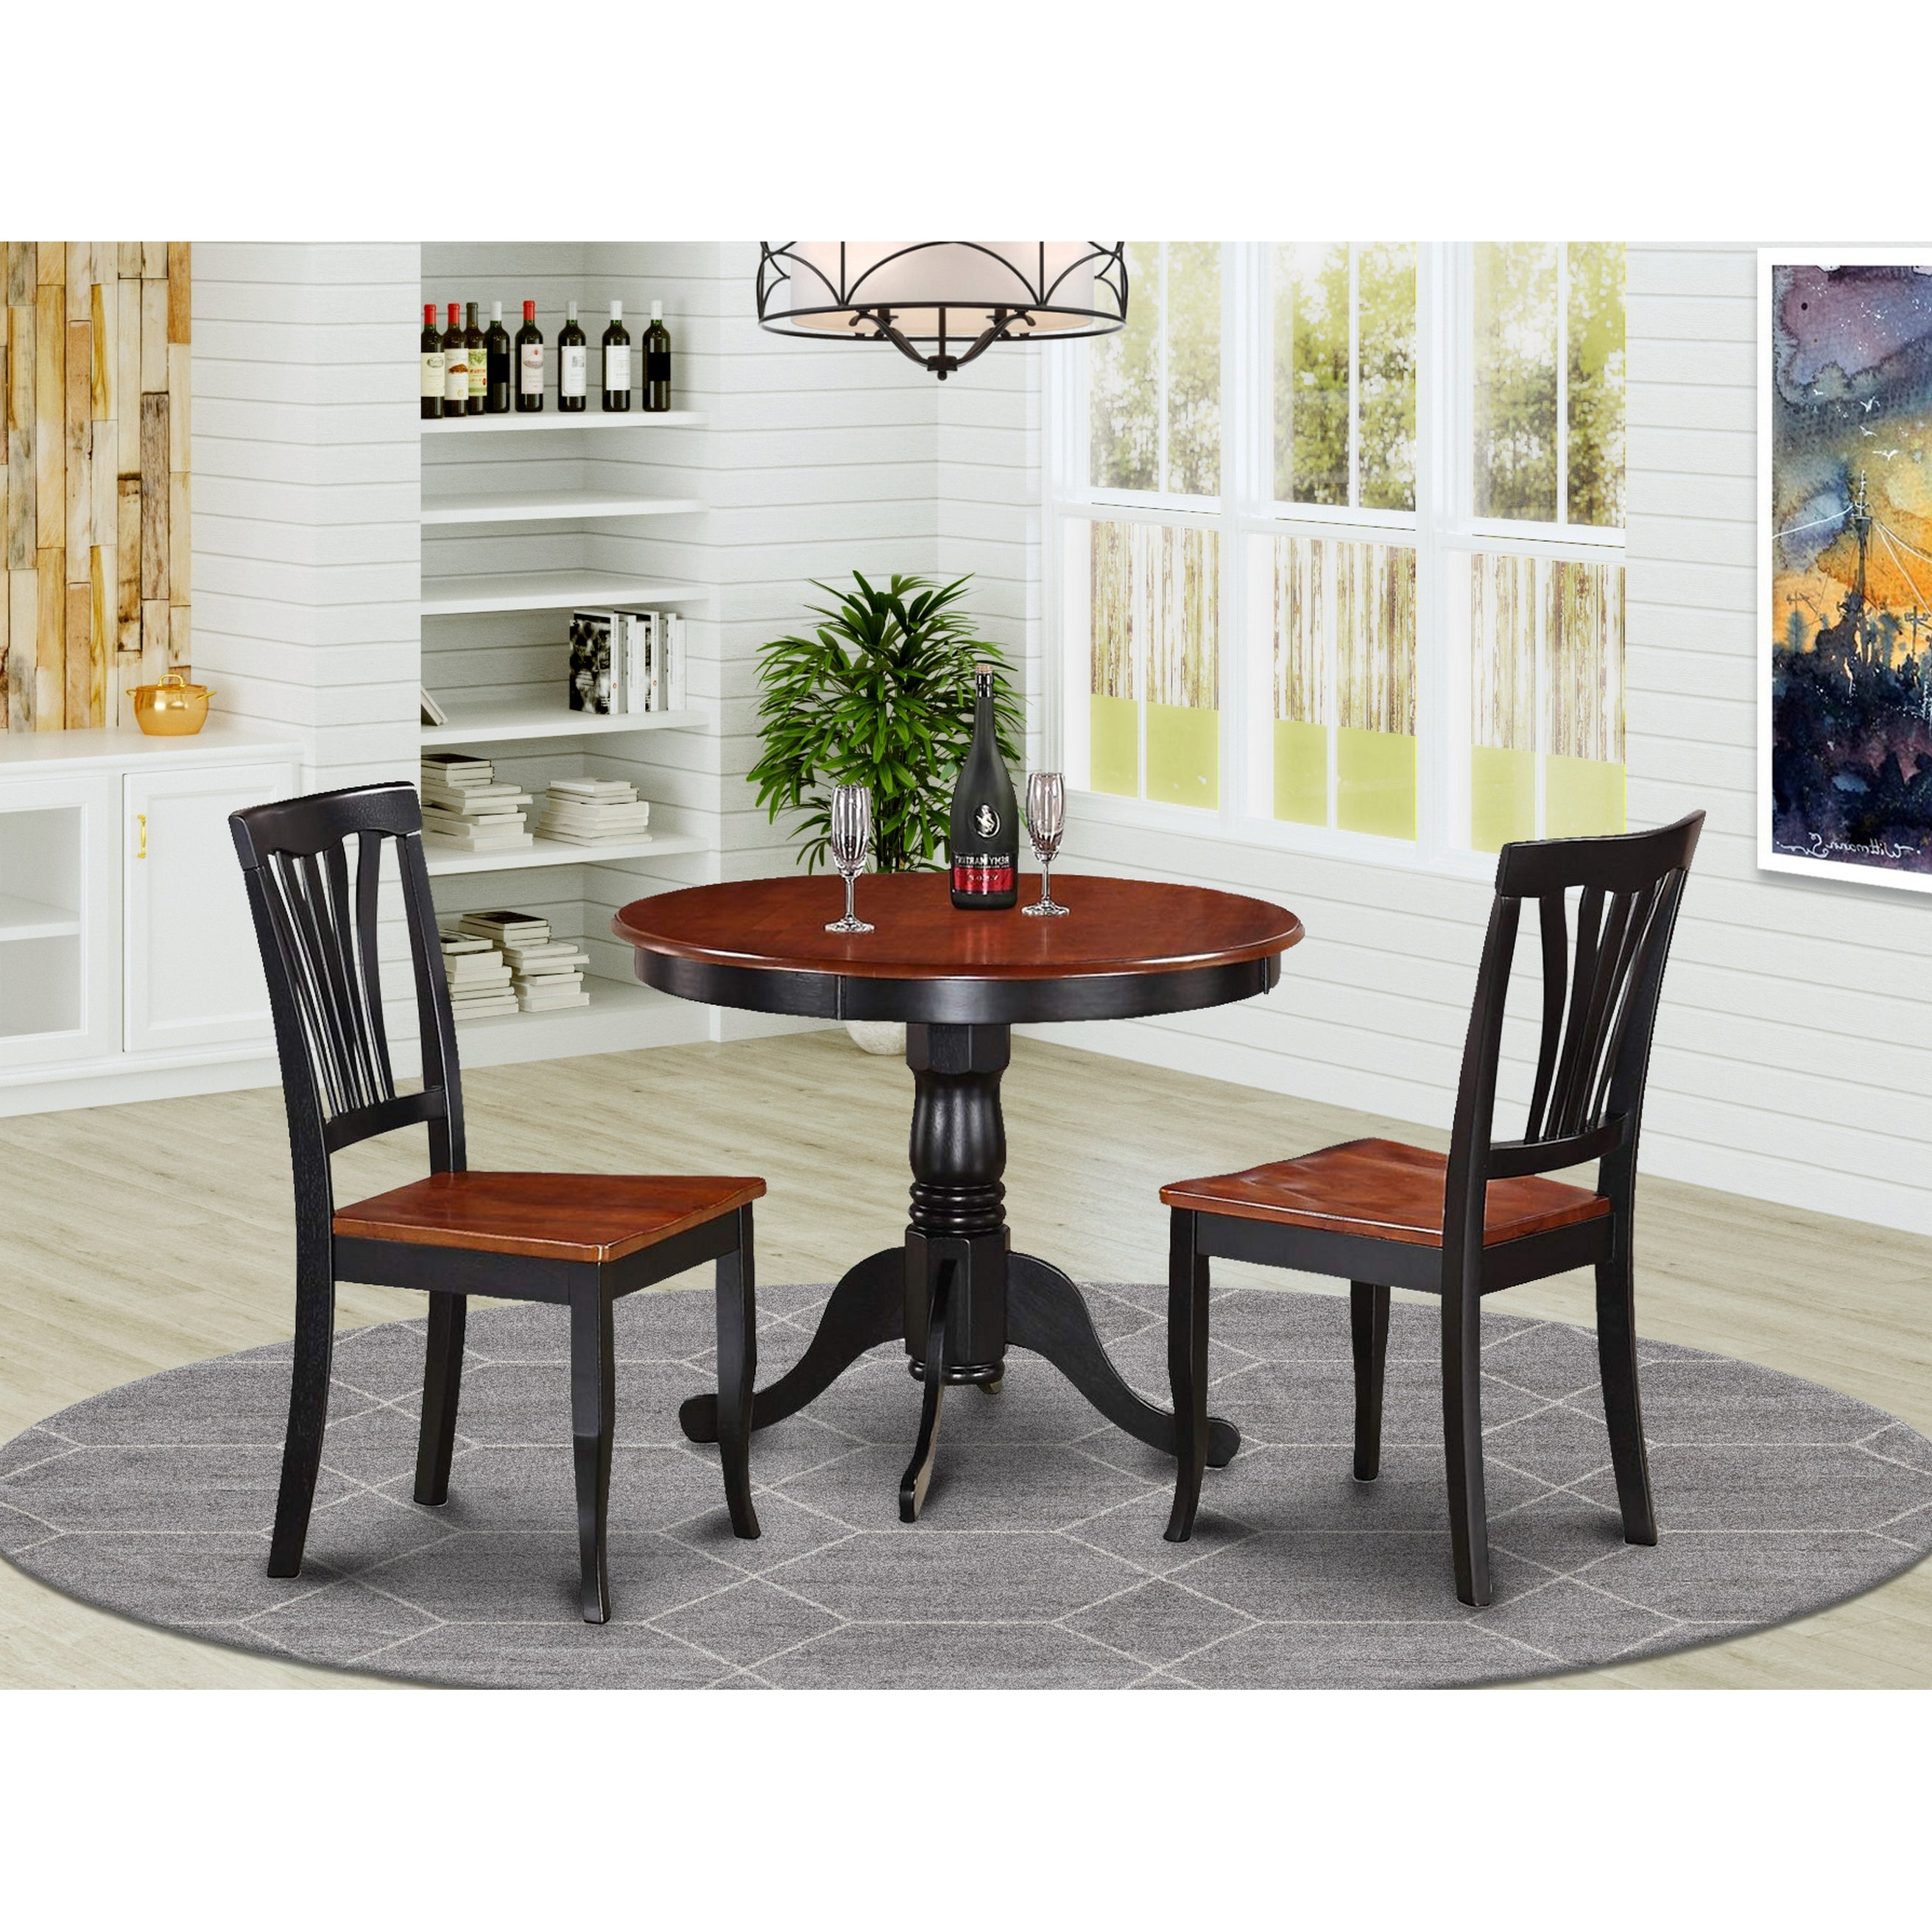 9-Piece Kitchen Nook Dining Set-Small Kitchen Table and 9 Kitchen Chairs